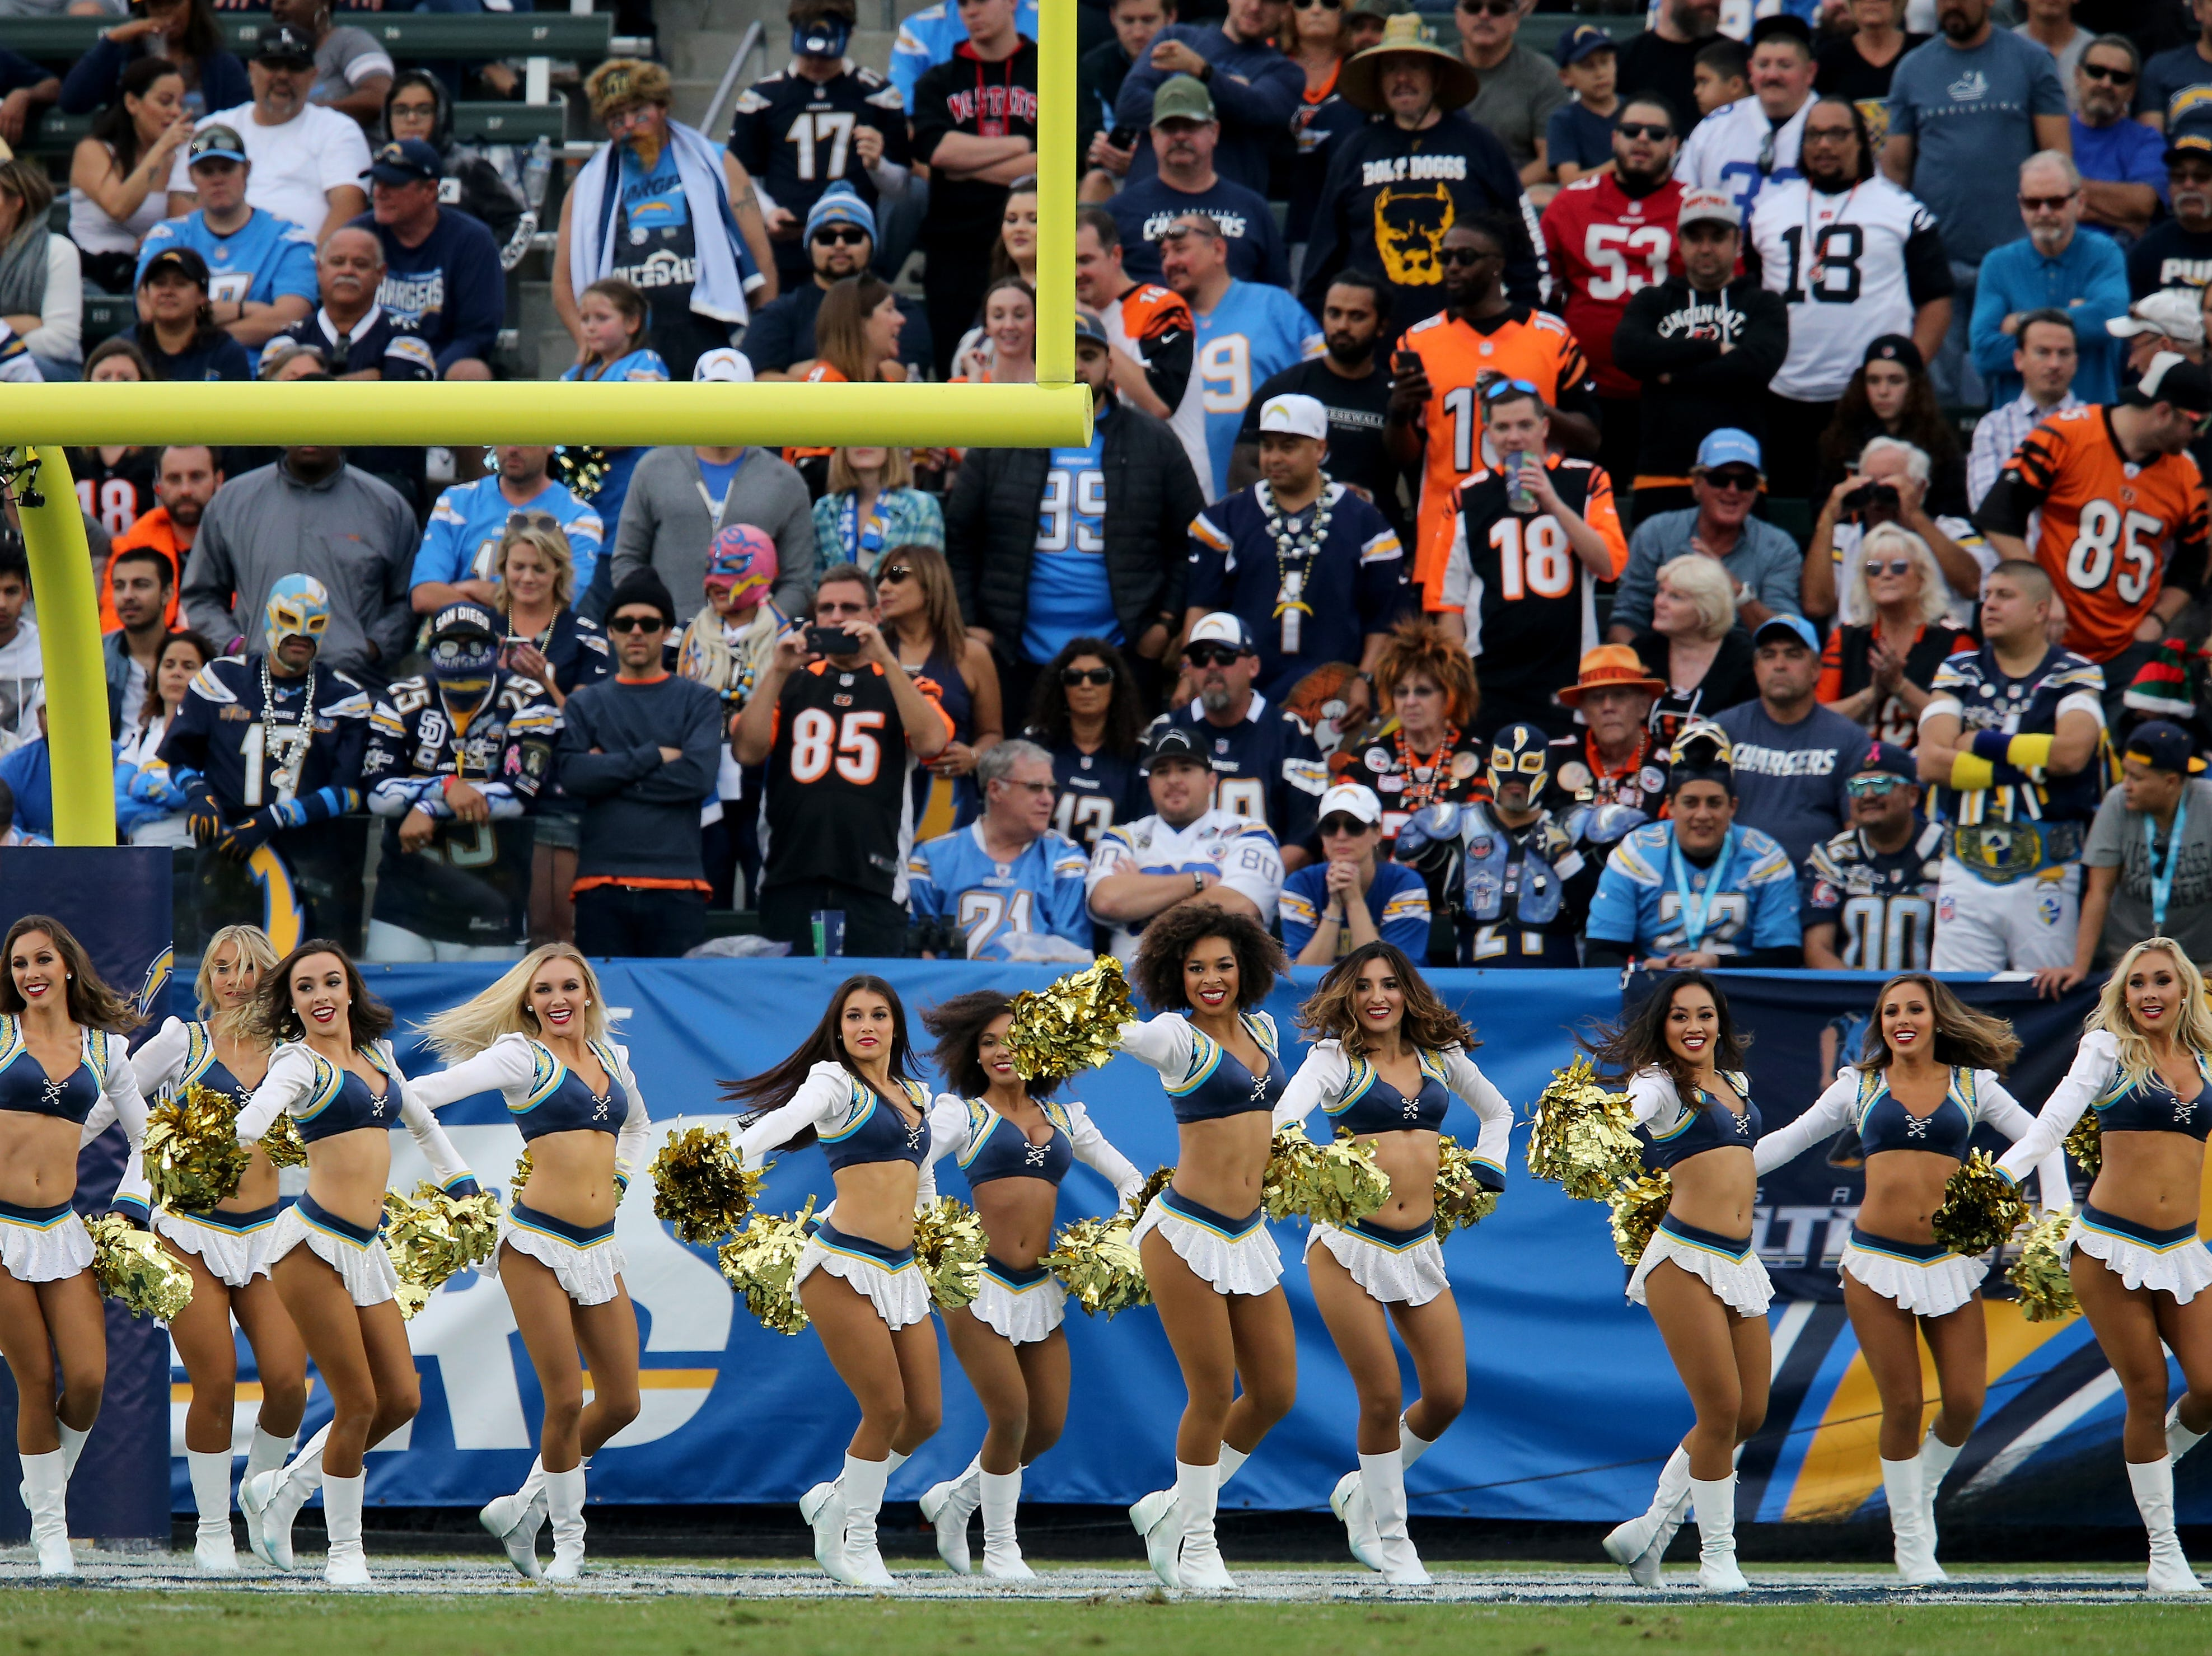 Los Angeles Chargers cheerleaders perform in the fourth quarter of a Week 14 NFL football game, Sunday, Dec. 9, 2018, at StubHub Center in Carson, California. The Los Angeles Chargers won 26.21.